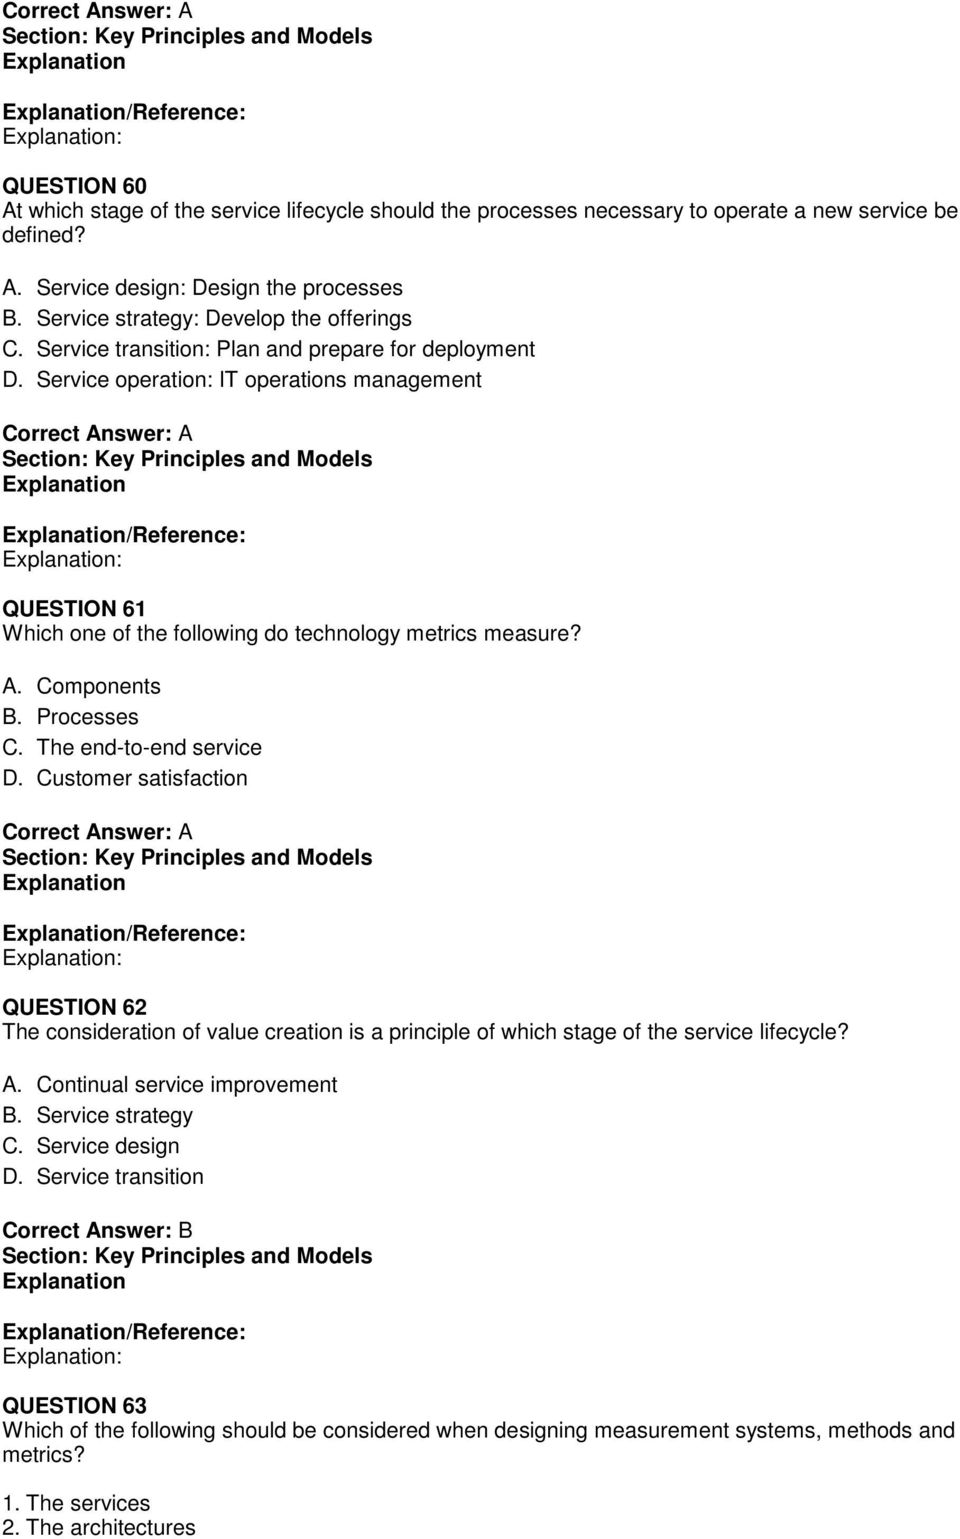 Service operation: IT operations management Section: Key Principles and Models /Reference: : QUESTION 61 Which one of the following do technology metrics measure? A. Components B. Processes C.